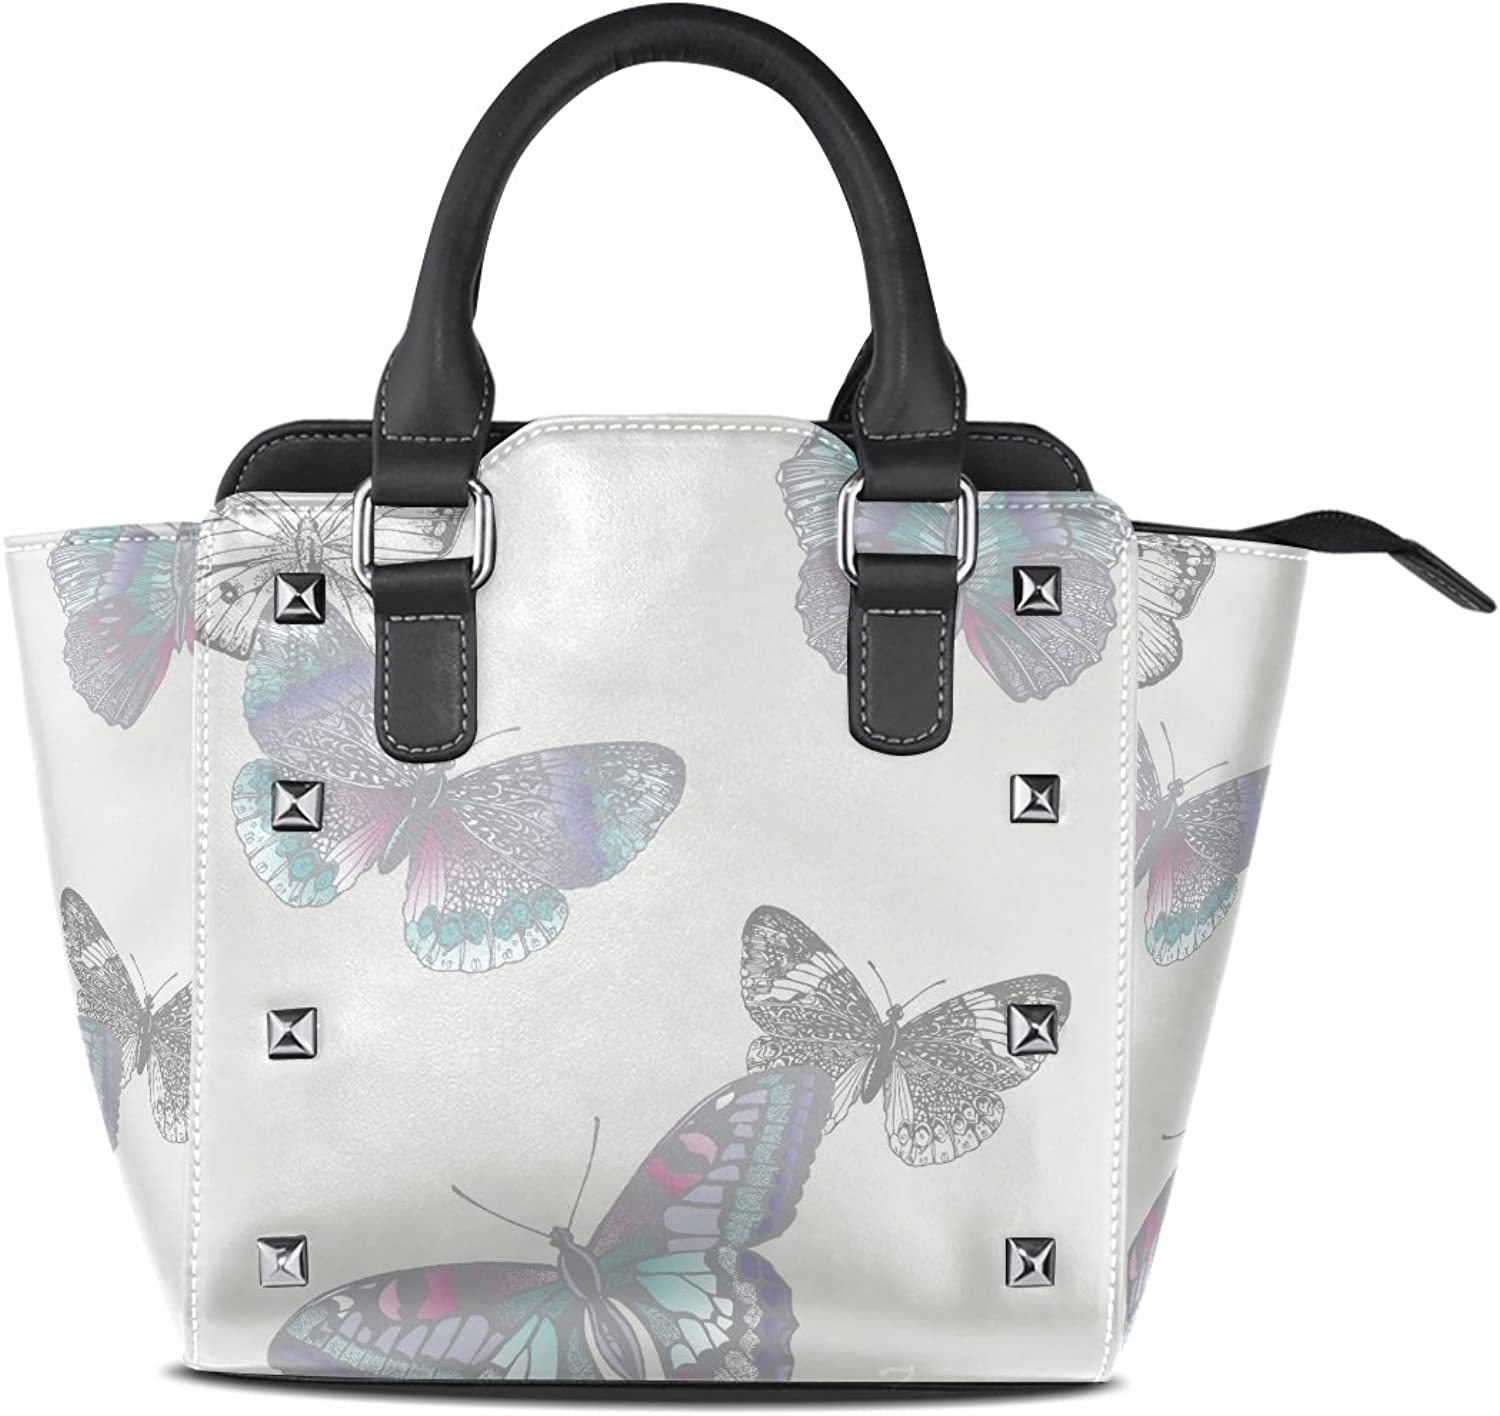 Sunlome Retro Butterfly Print Women's Leather Tote Shoulder Bags Handbags